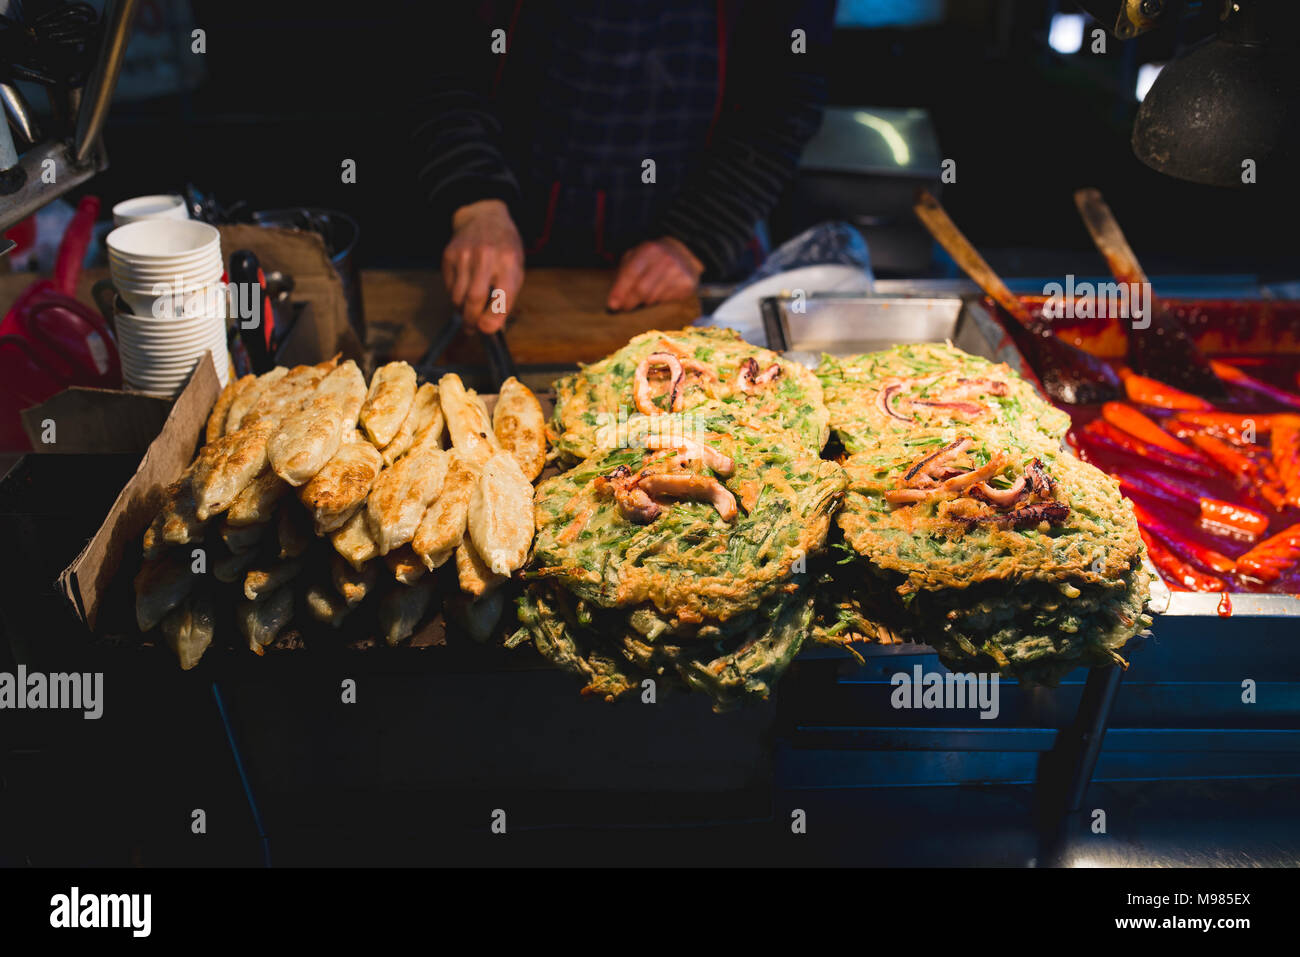 South Korea, Busan, street food market to take away - Stock Image